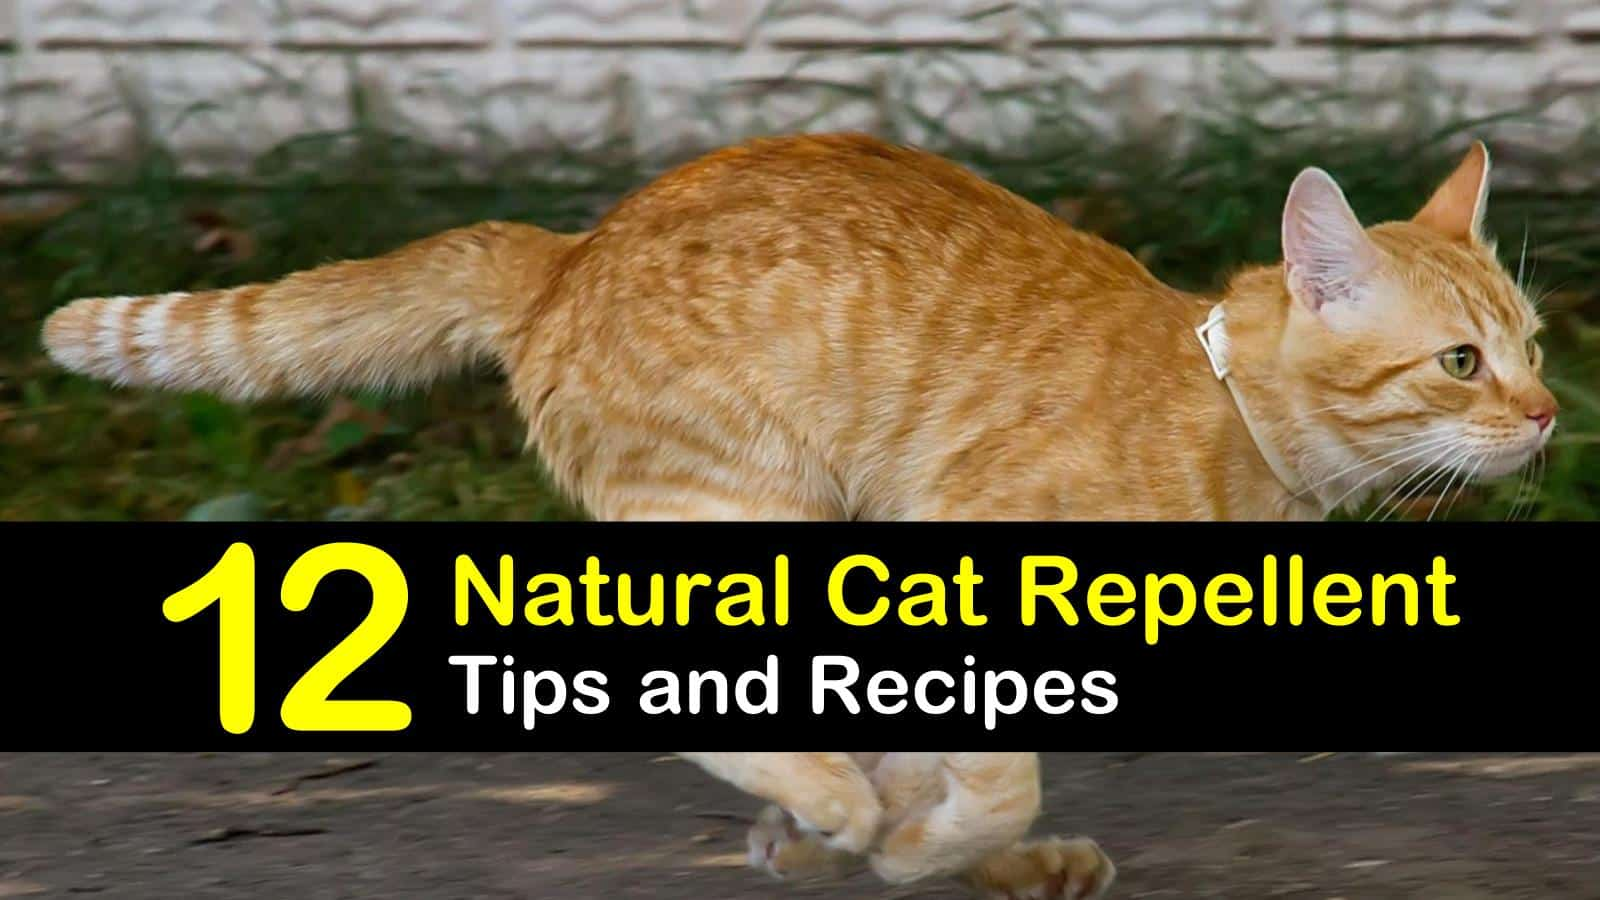 natural cat repellent titleimg1